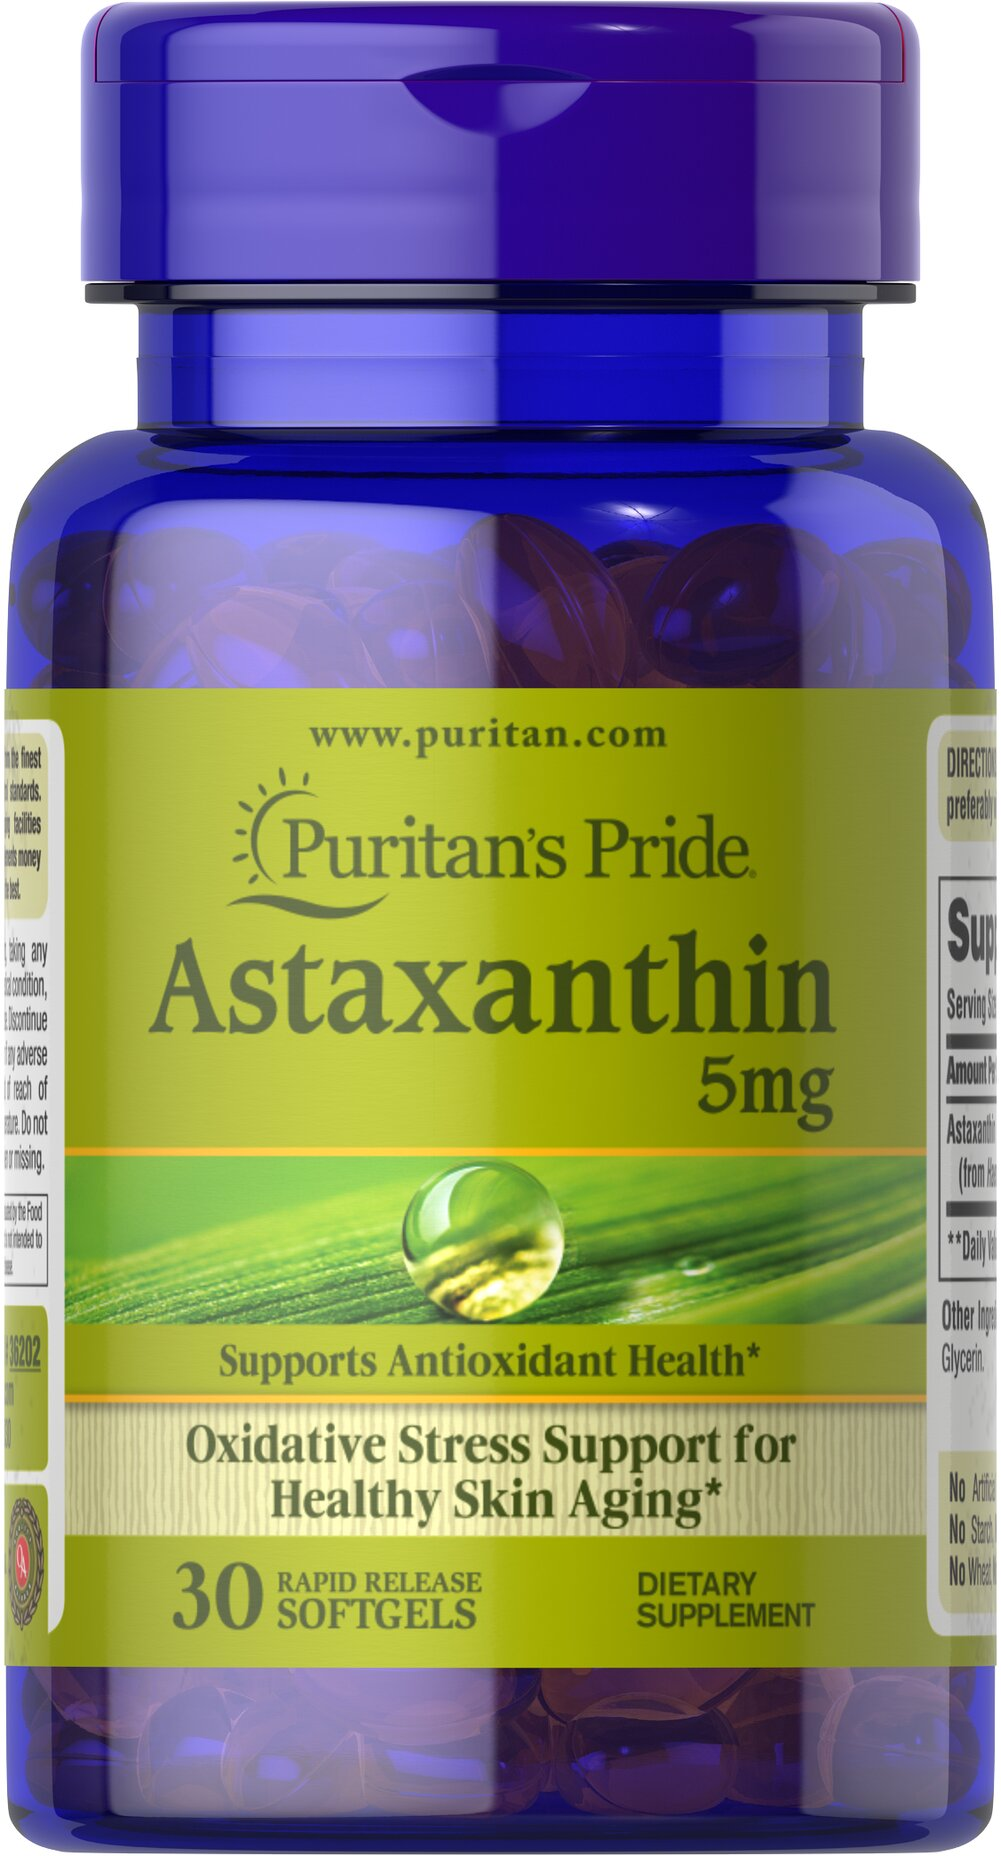 Astaxanthin 5 mg <p>Powerful Antioxidant**</p><p>Suited for Stressful Lifestyles**</p><p>Astaxanthin promotes antioxidant health, which helps fight the cell damaging free radicals that can lead to oxidative stress which may contribute to the premature aging of cells.**</p> 30 Softgels 5 mg $16.99